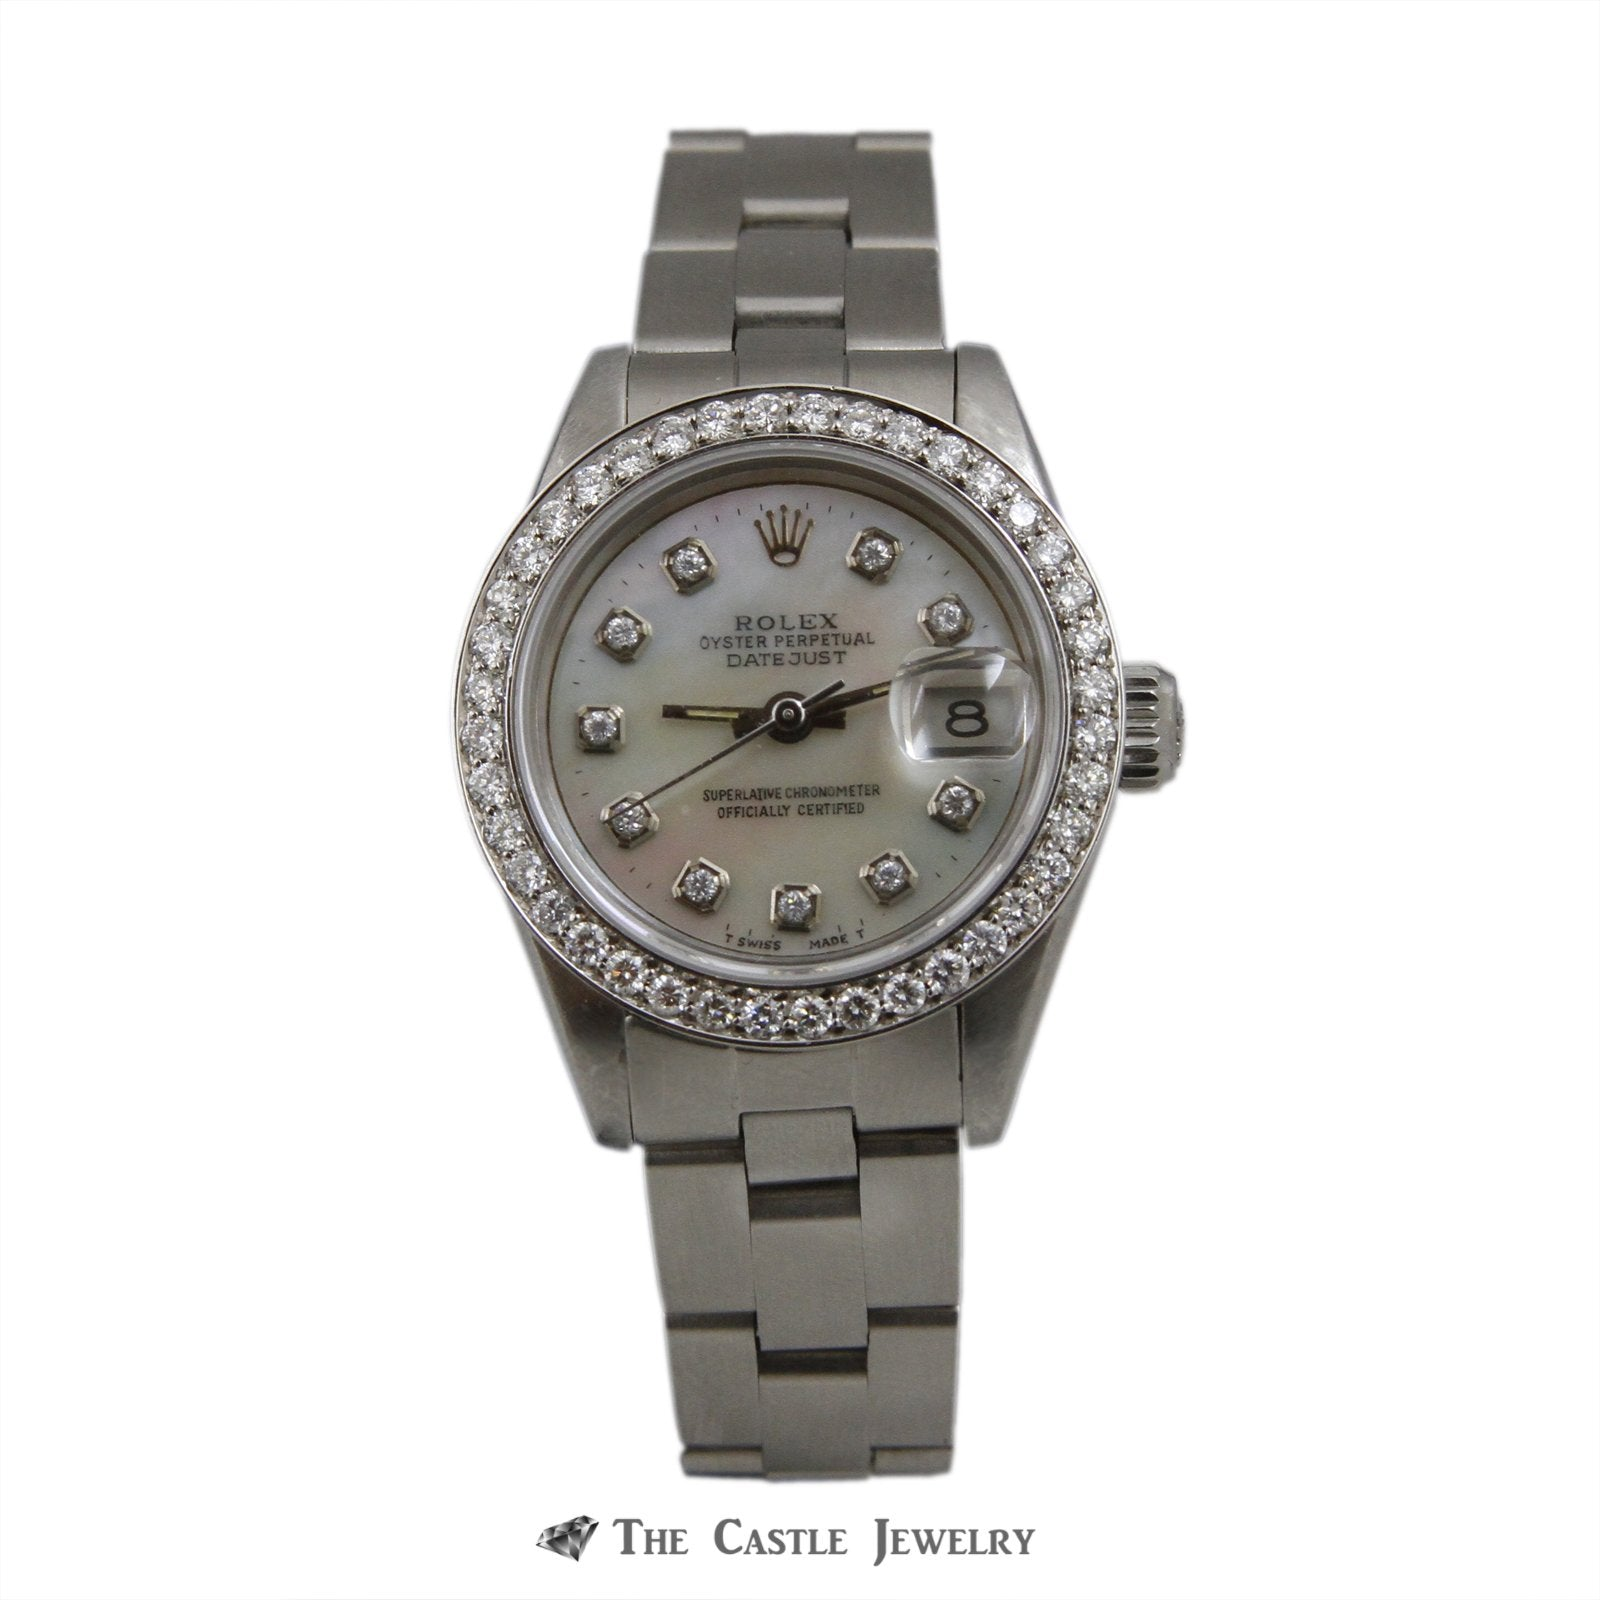 Rolex Datejust 26mm Watch Stainless Steel w/ Mother of Pearl Diamond Dial & Bezel 69160